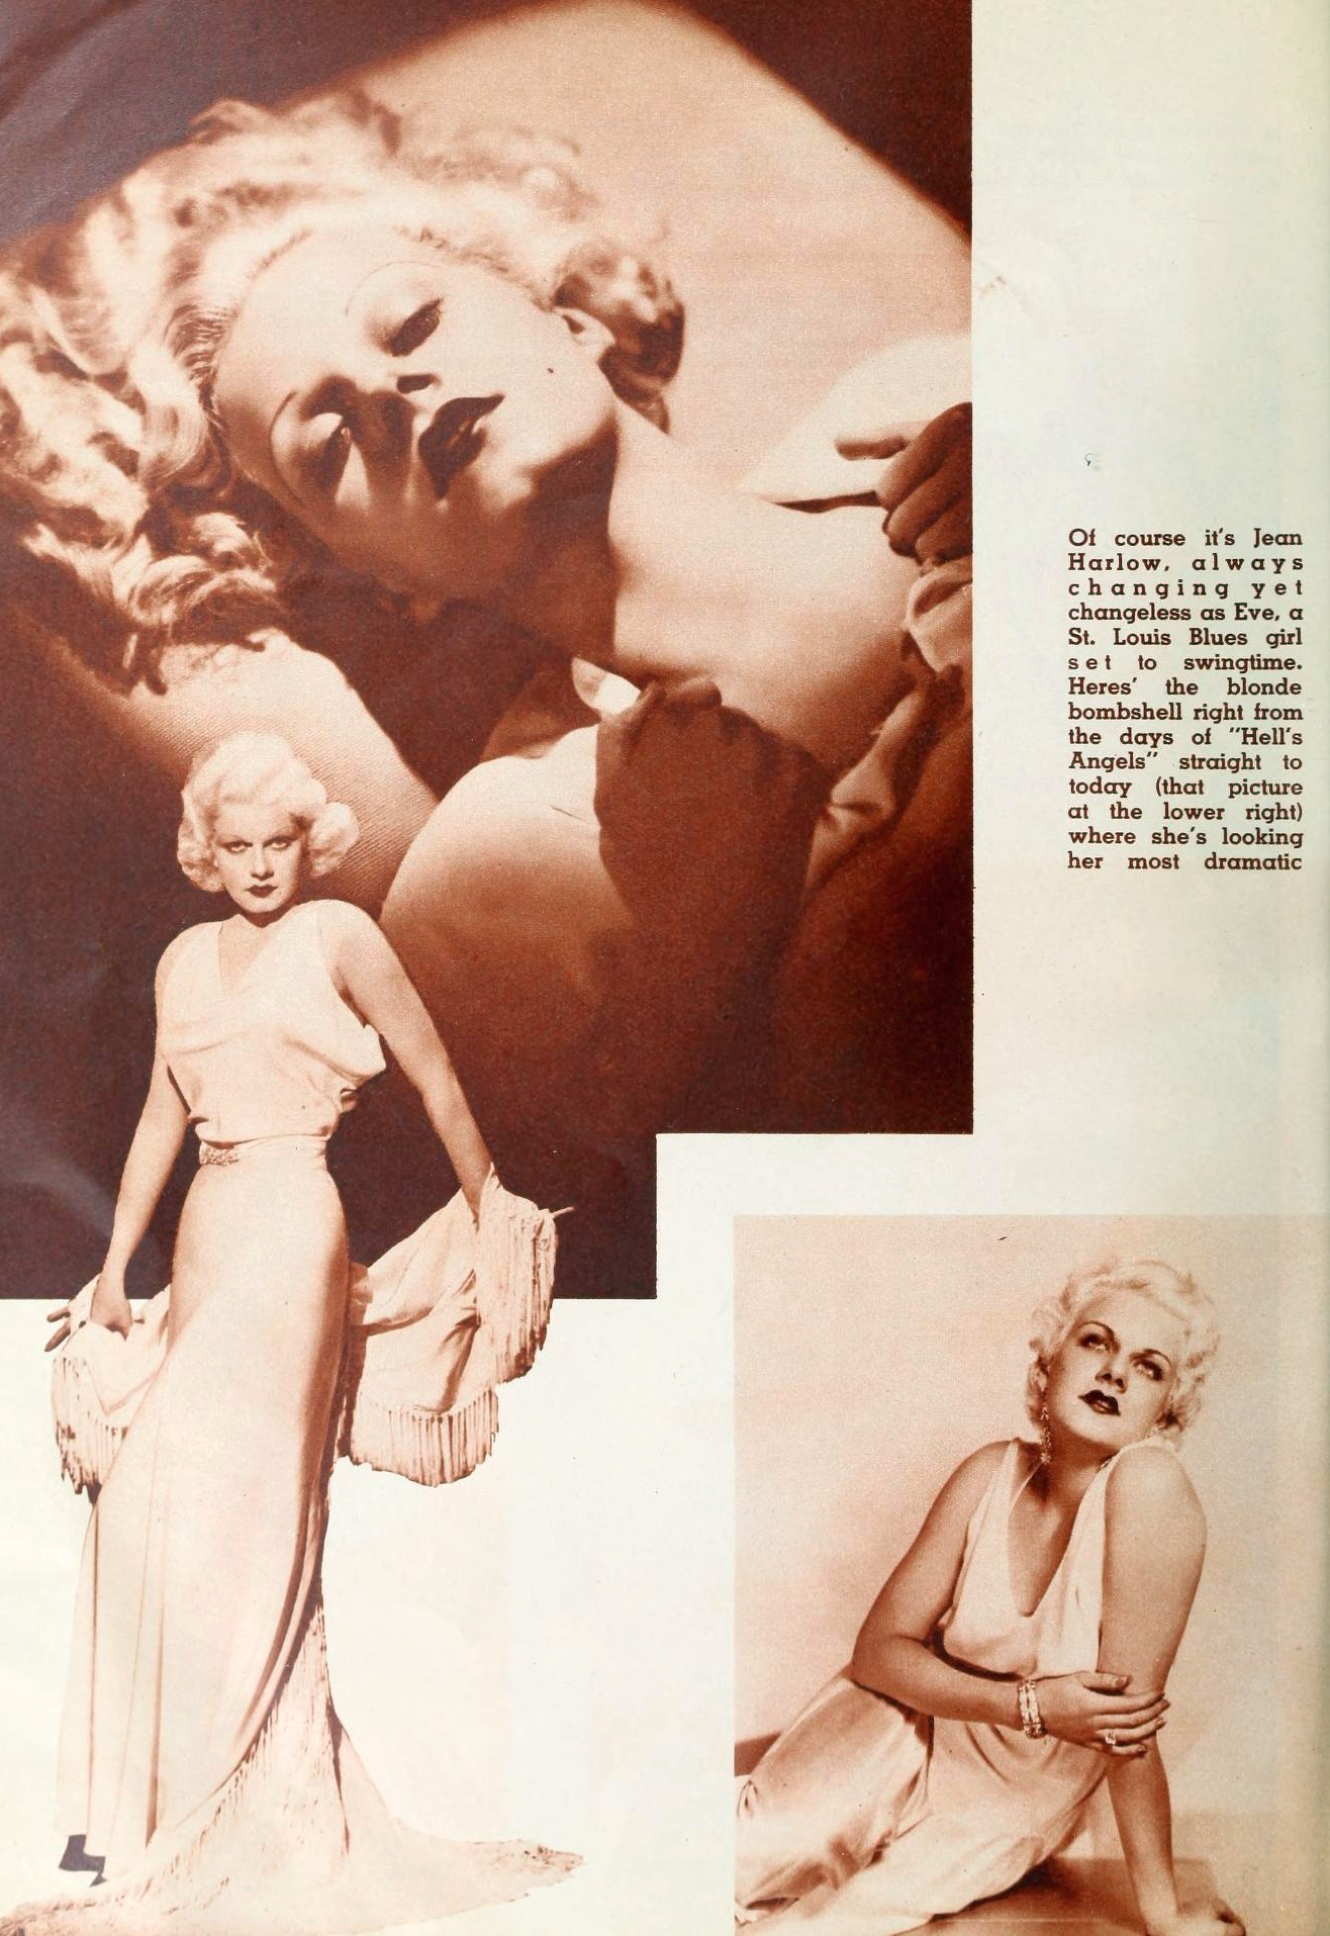 photoplay feb 1937 jean harlow 00a